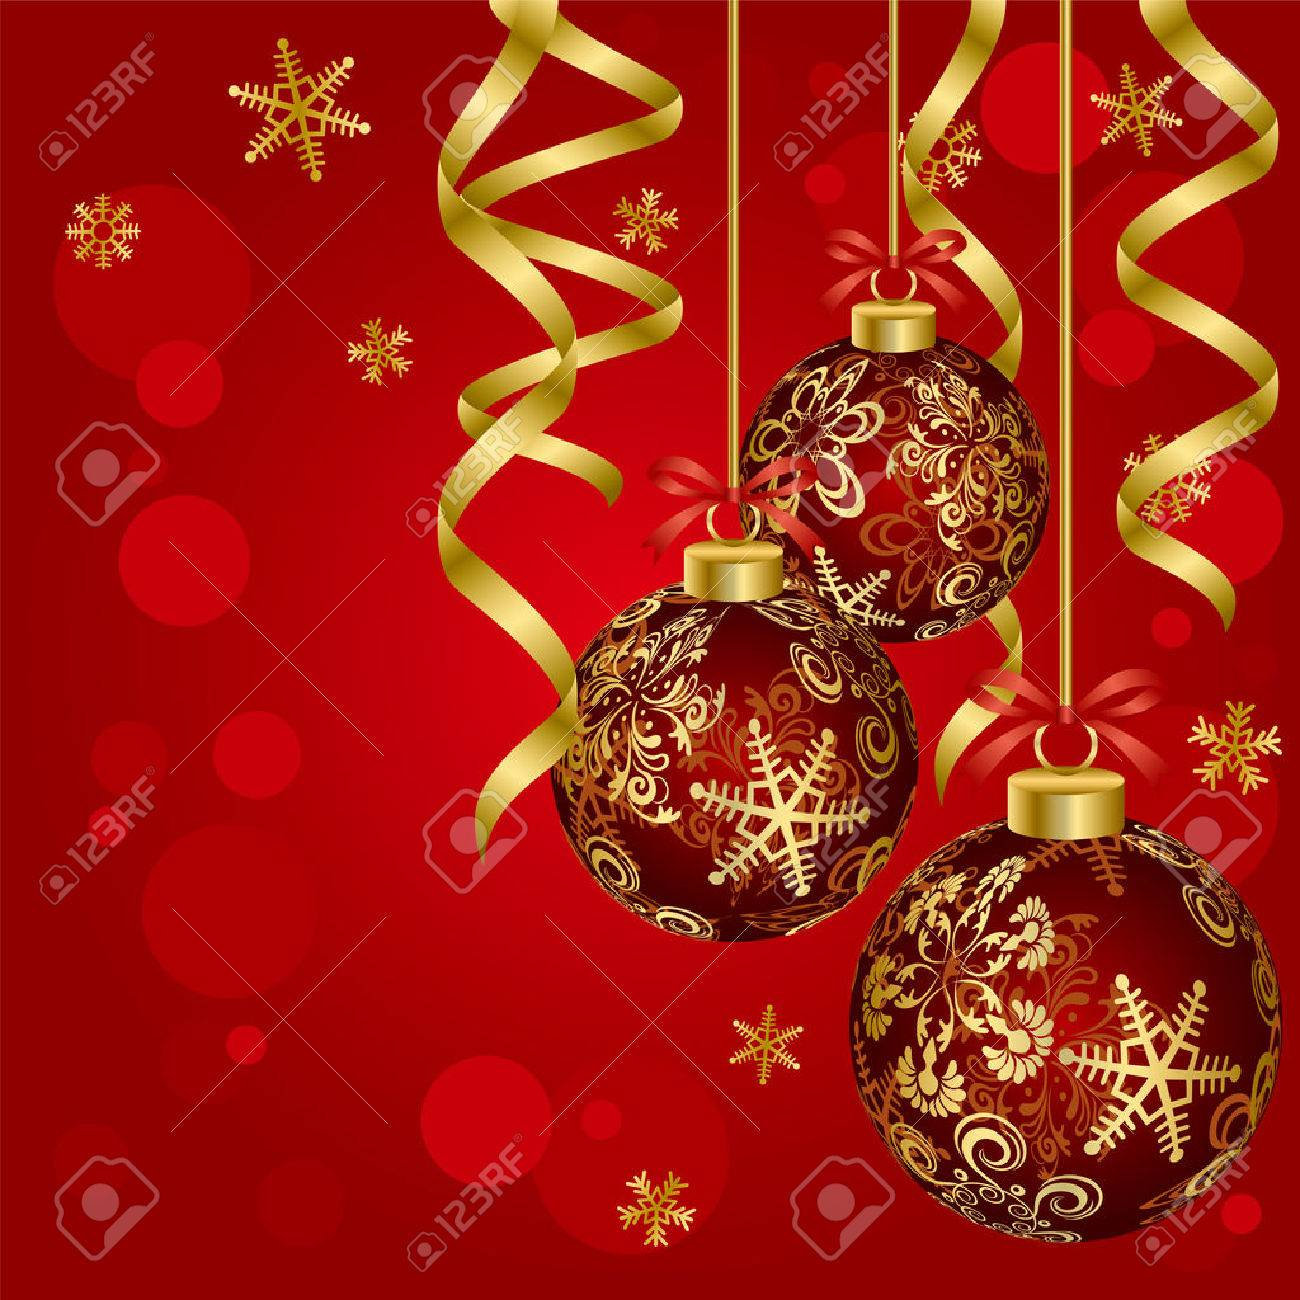 Luxury Christmas Ball. Illustration vector. Stock Vector - 8070352